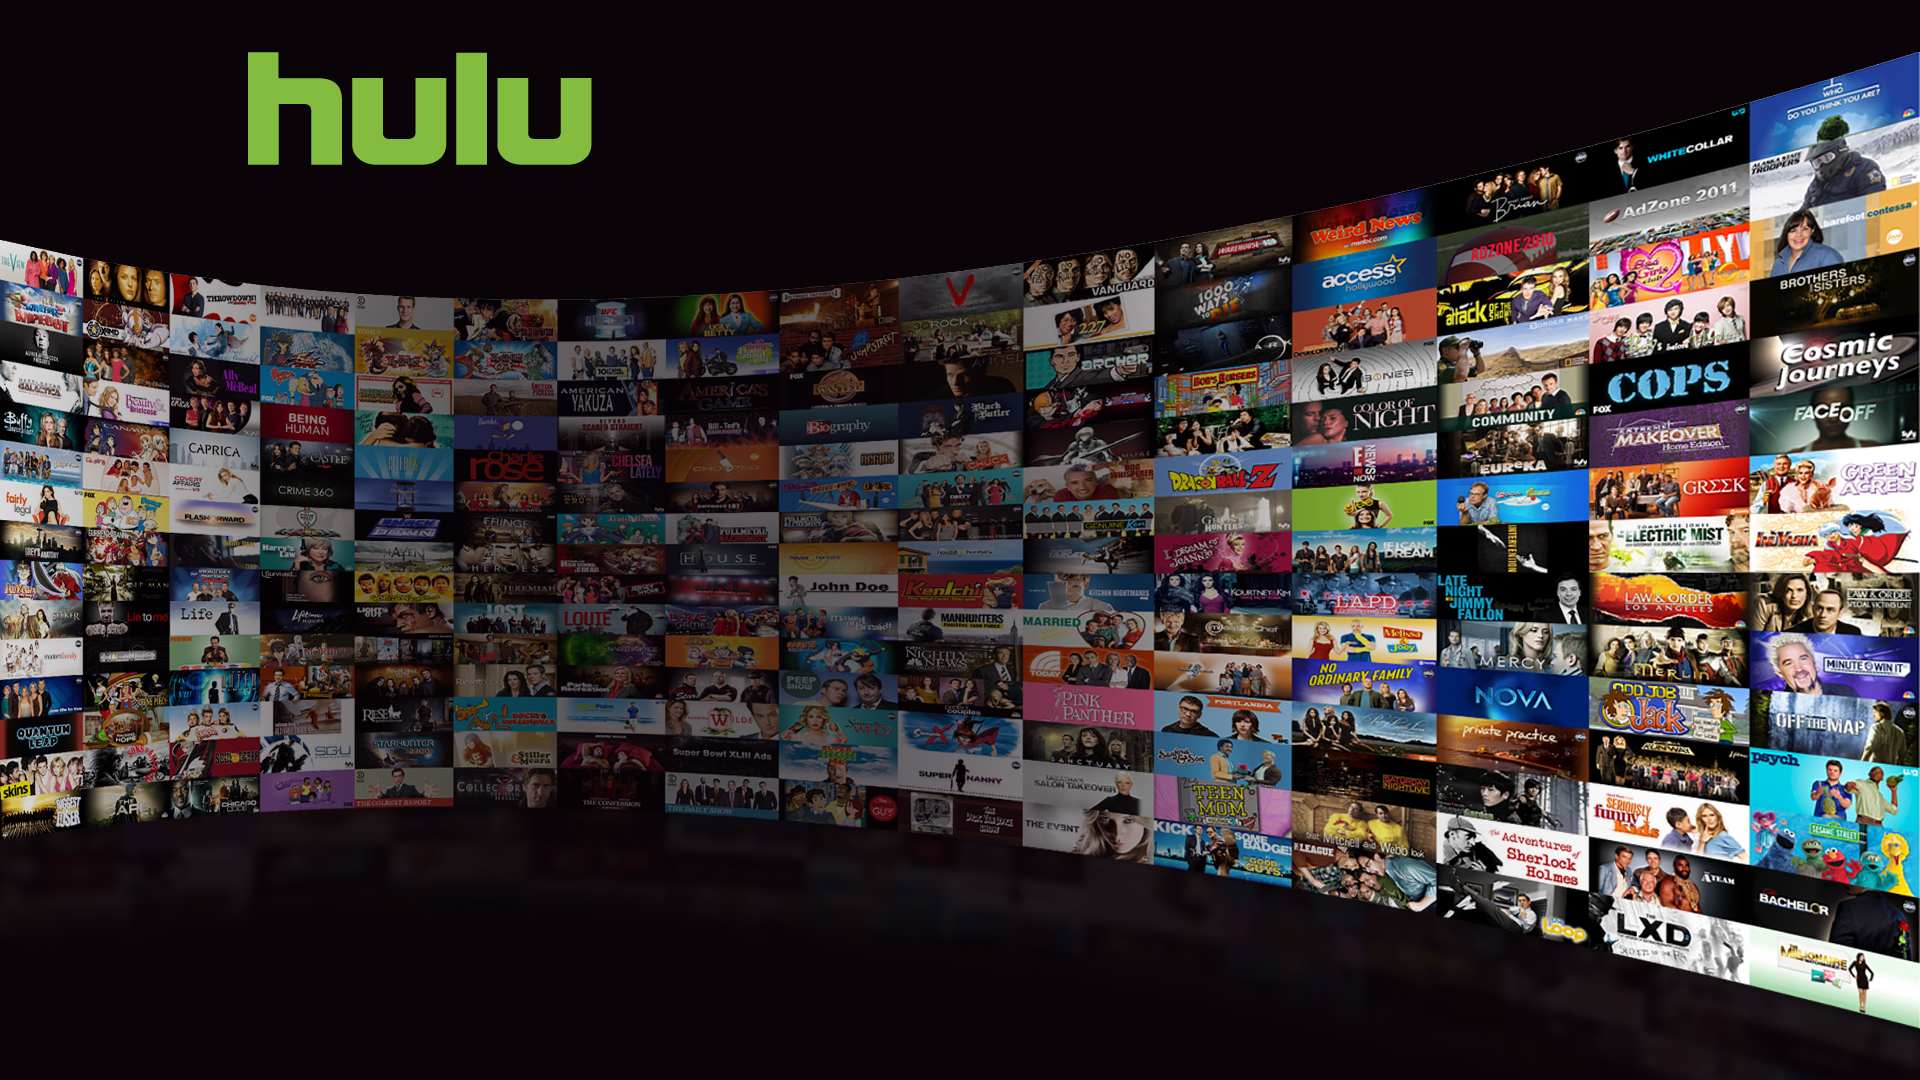 Hulu is ending the version of its streaming service 1920x1080